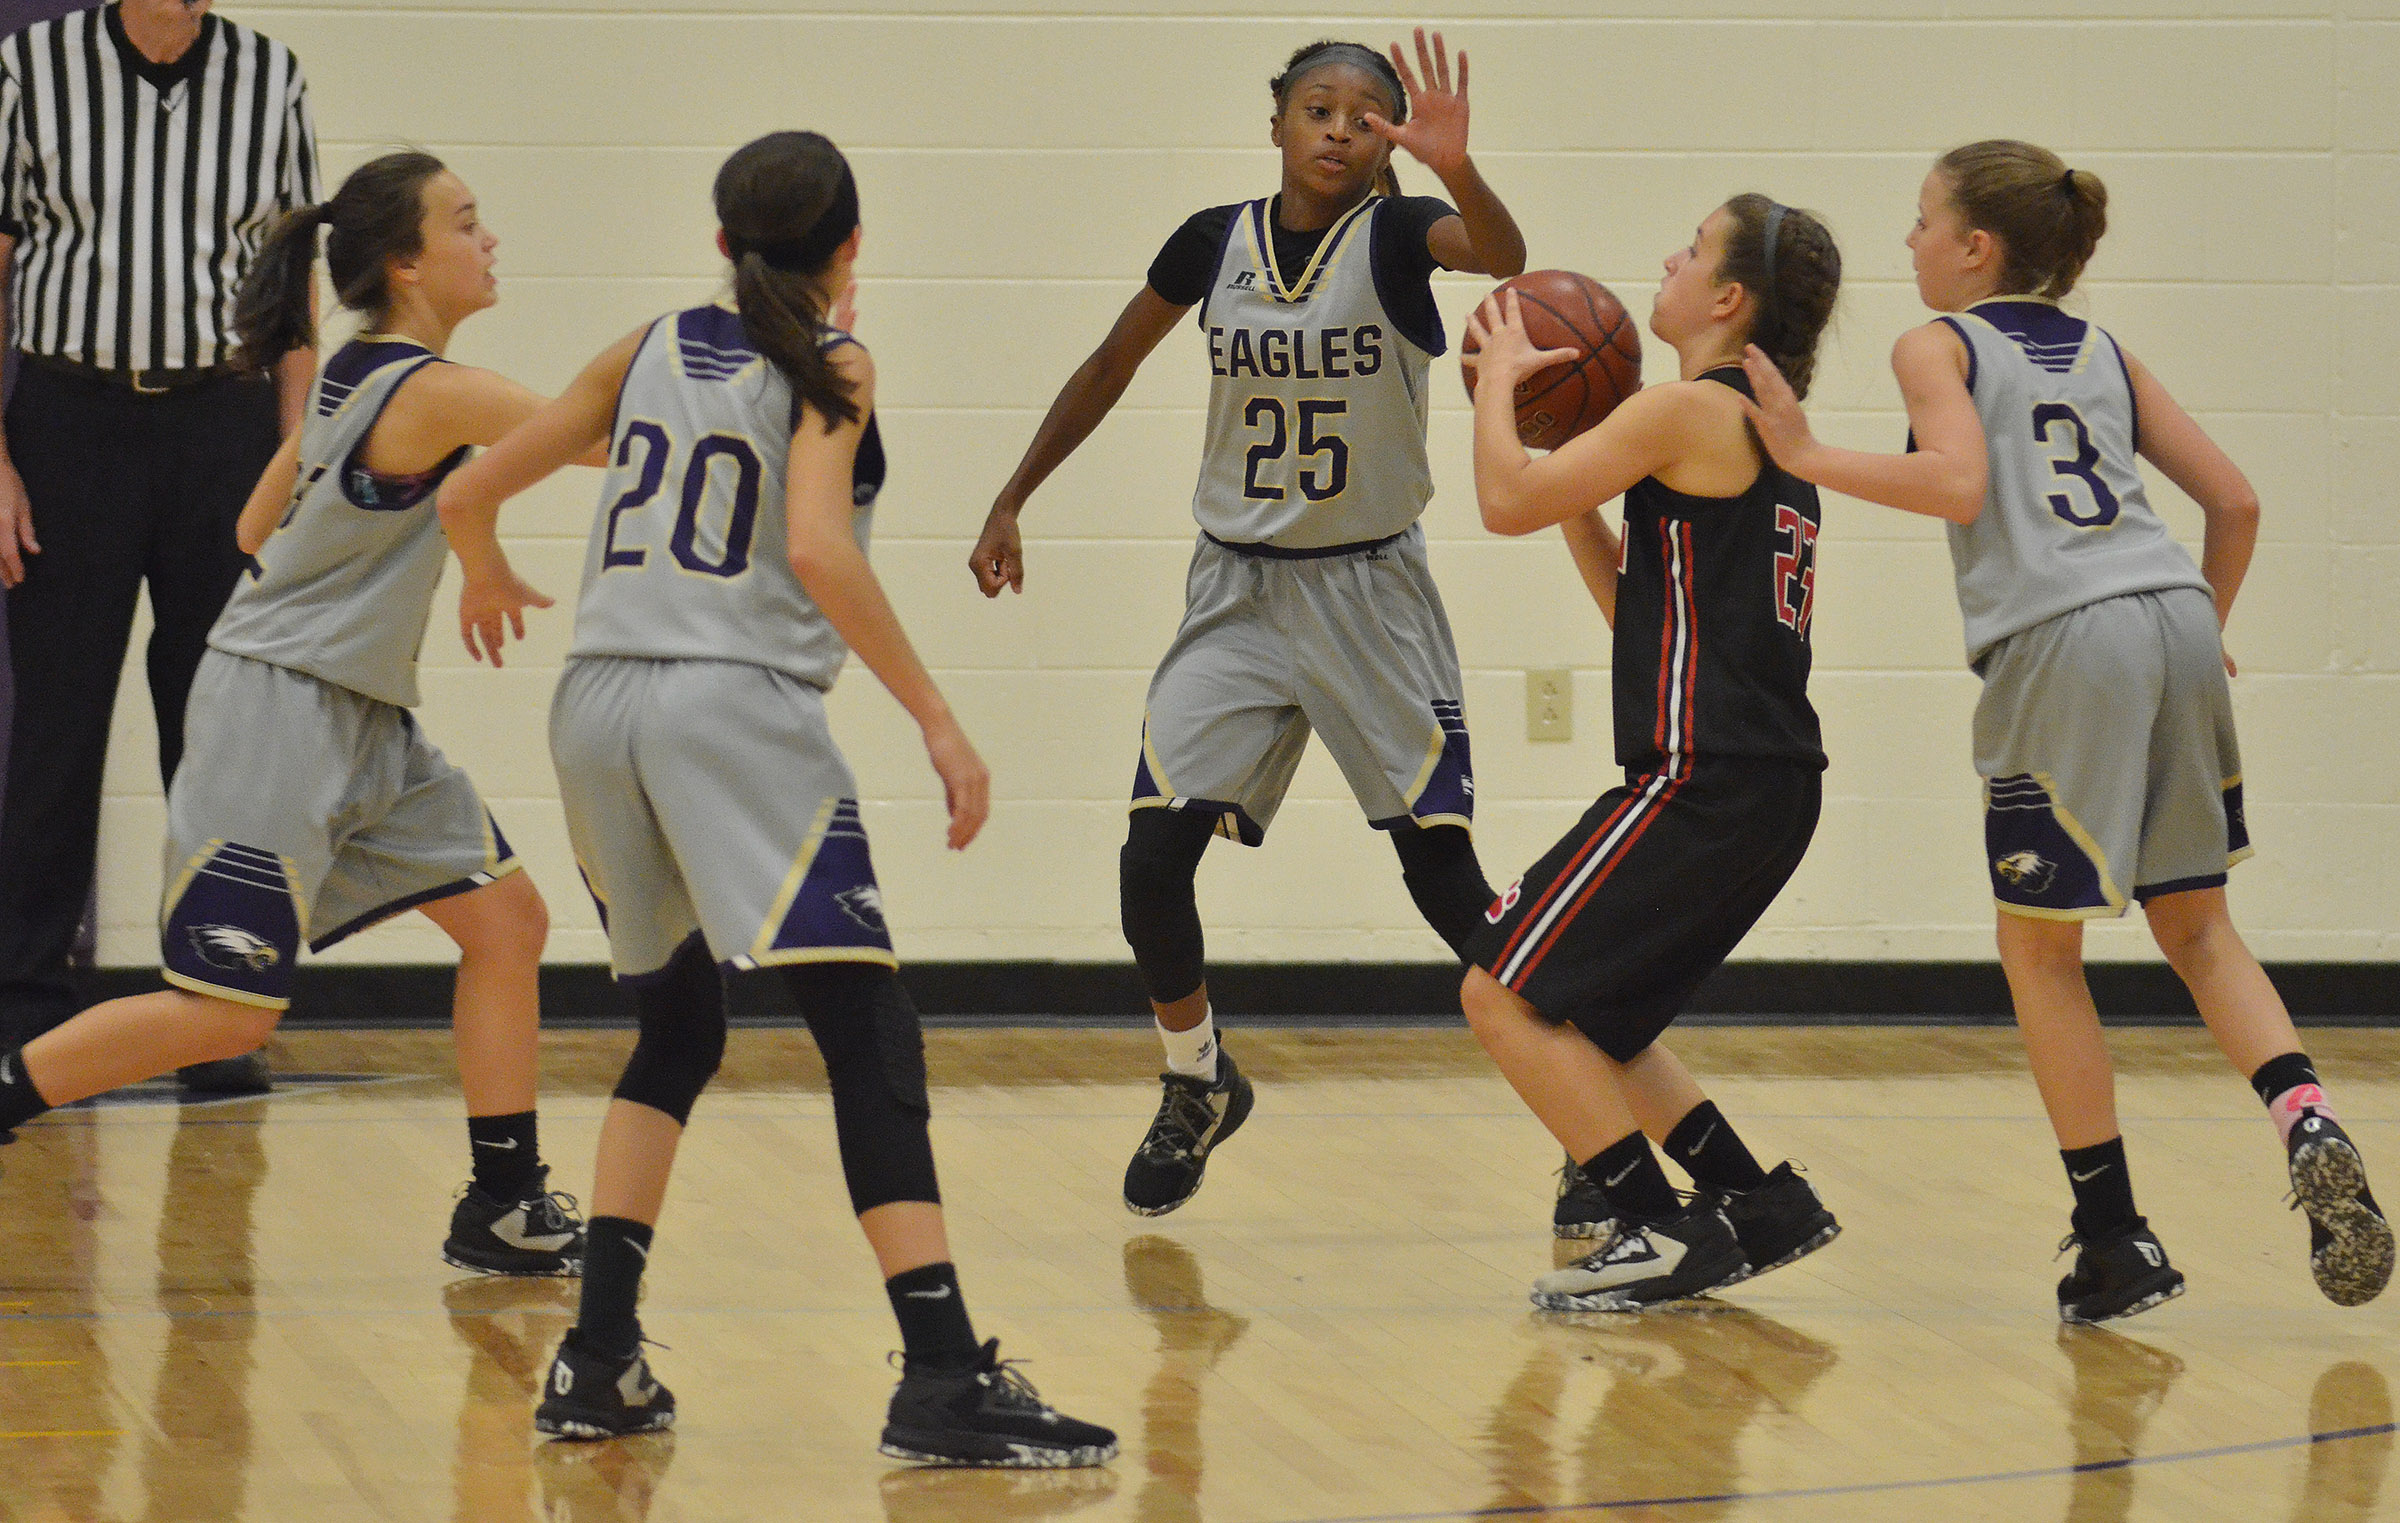 From left, CMS eighth-graders Tayler Thompson, Kaylyn Smith, Bri Gowdy and Rylee Petett play defense.